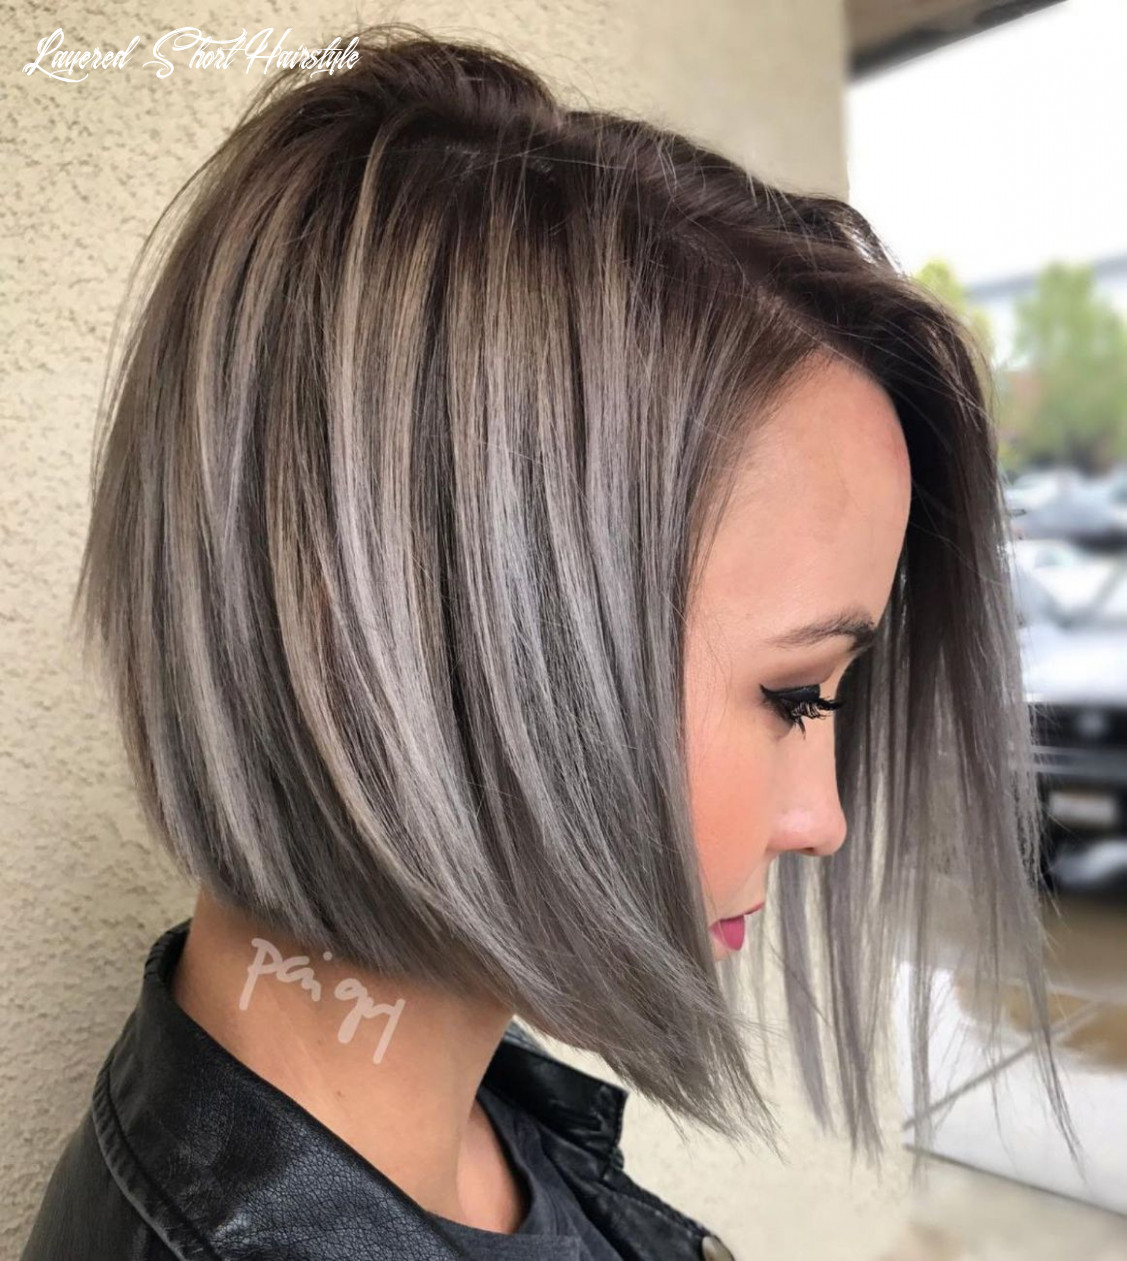 9 cute and easy to style short layered hairstyles in 9 | short